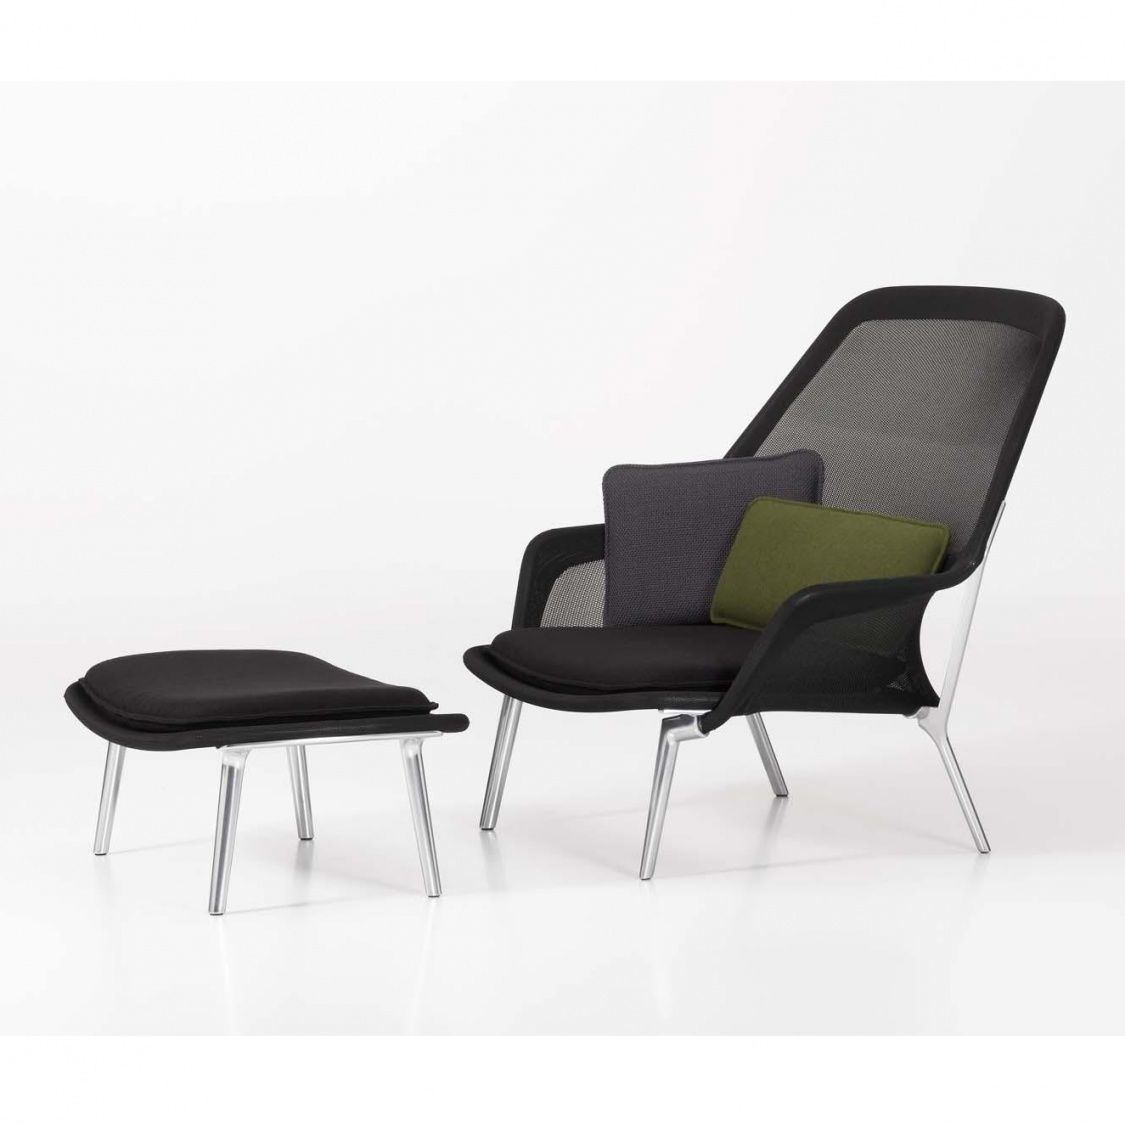 slow chair lounge chair ottoman vitra. Black Bedroom Furniture Sets. Home Design Ideas